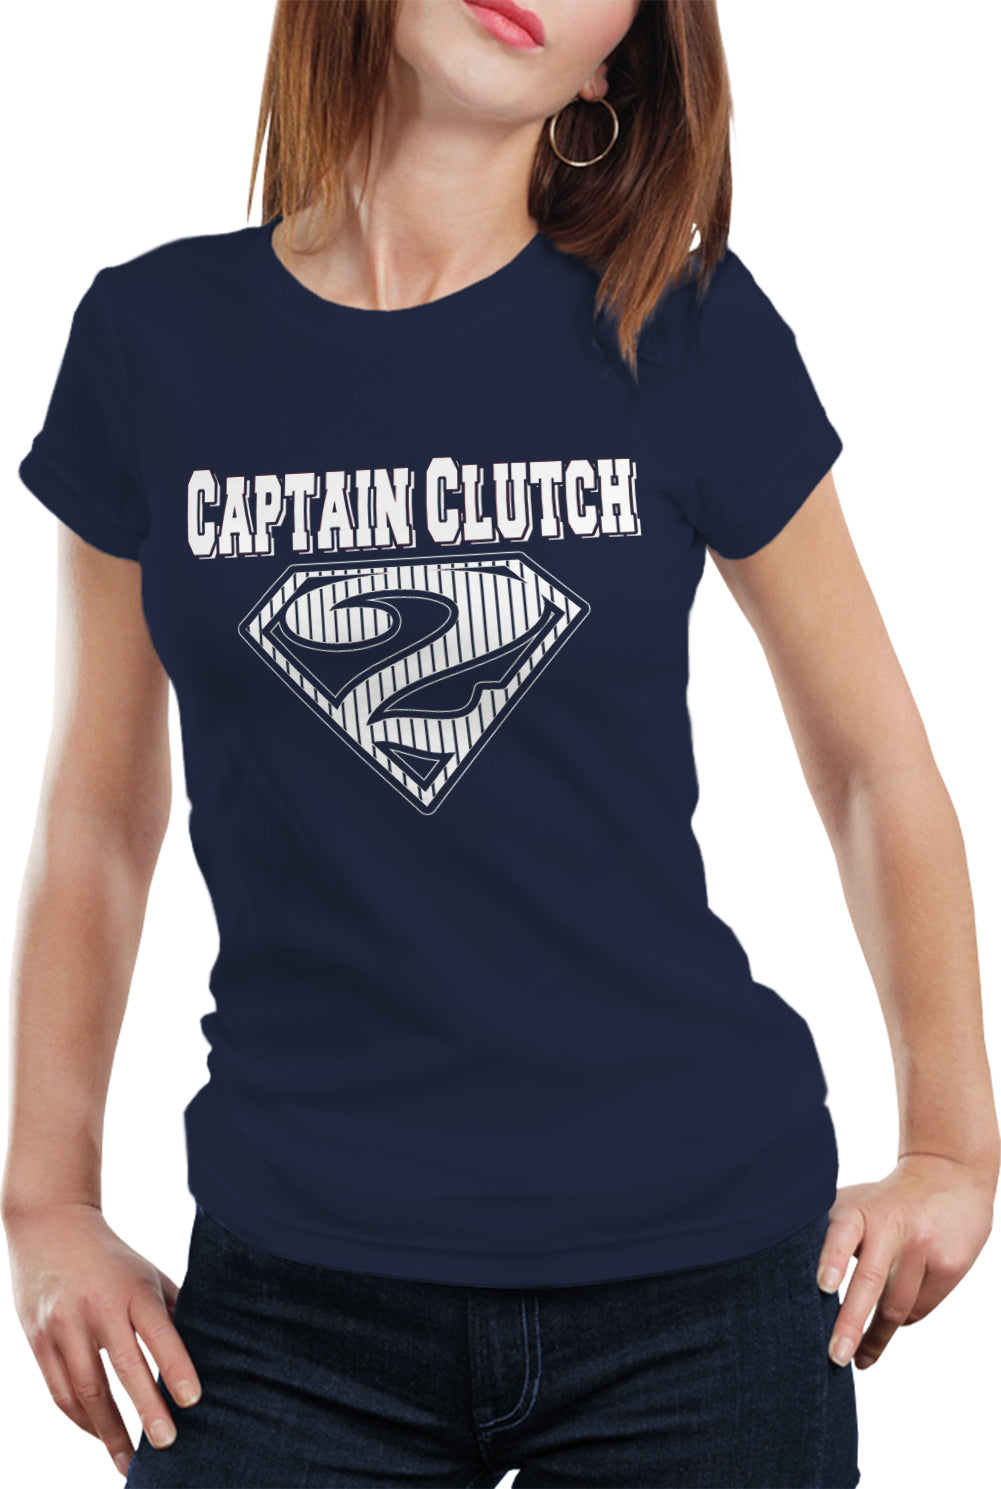 Captain Clutch #2 Pinstripe Baseball Girl's T-Shirt